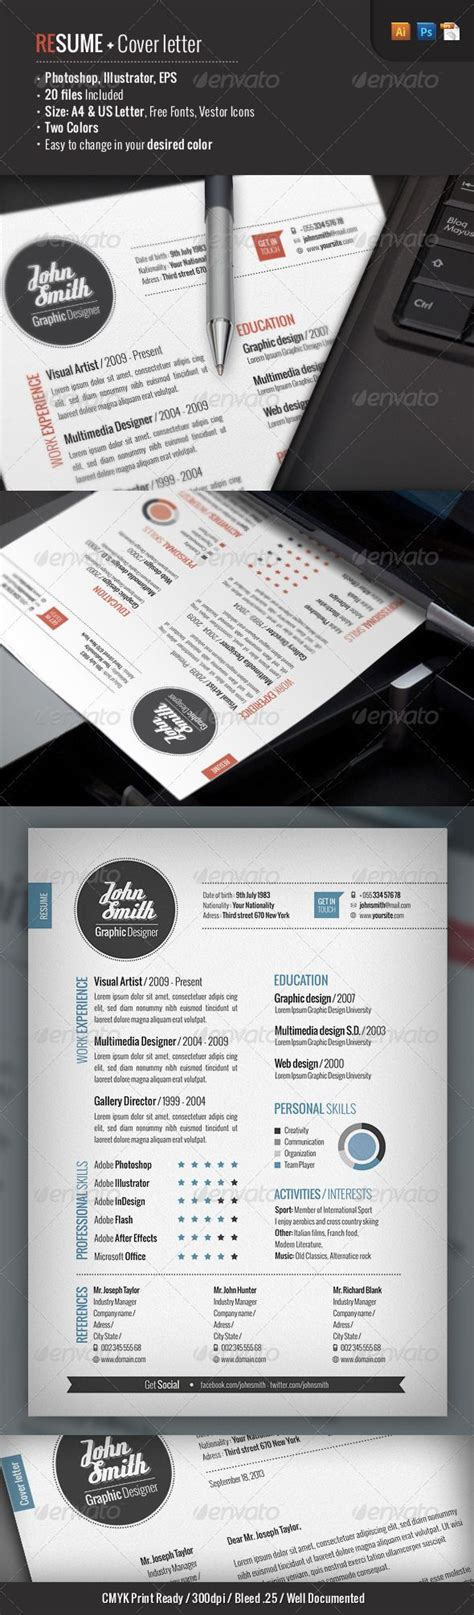 Memo Template Graphicriver 1000 images about cv on cover letter resume